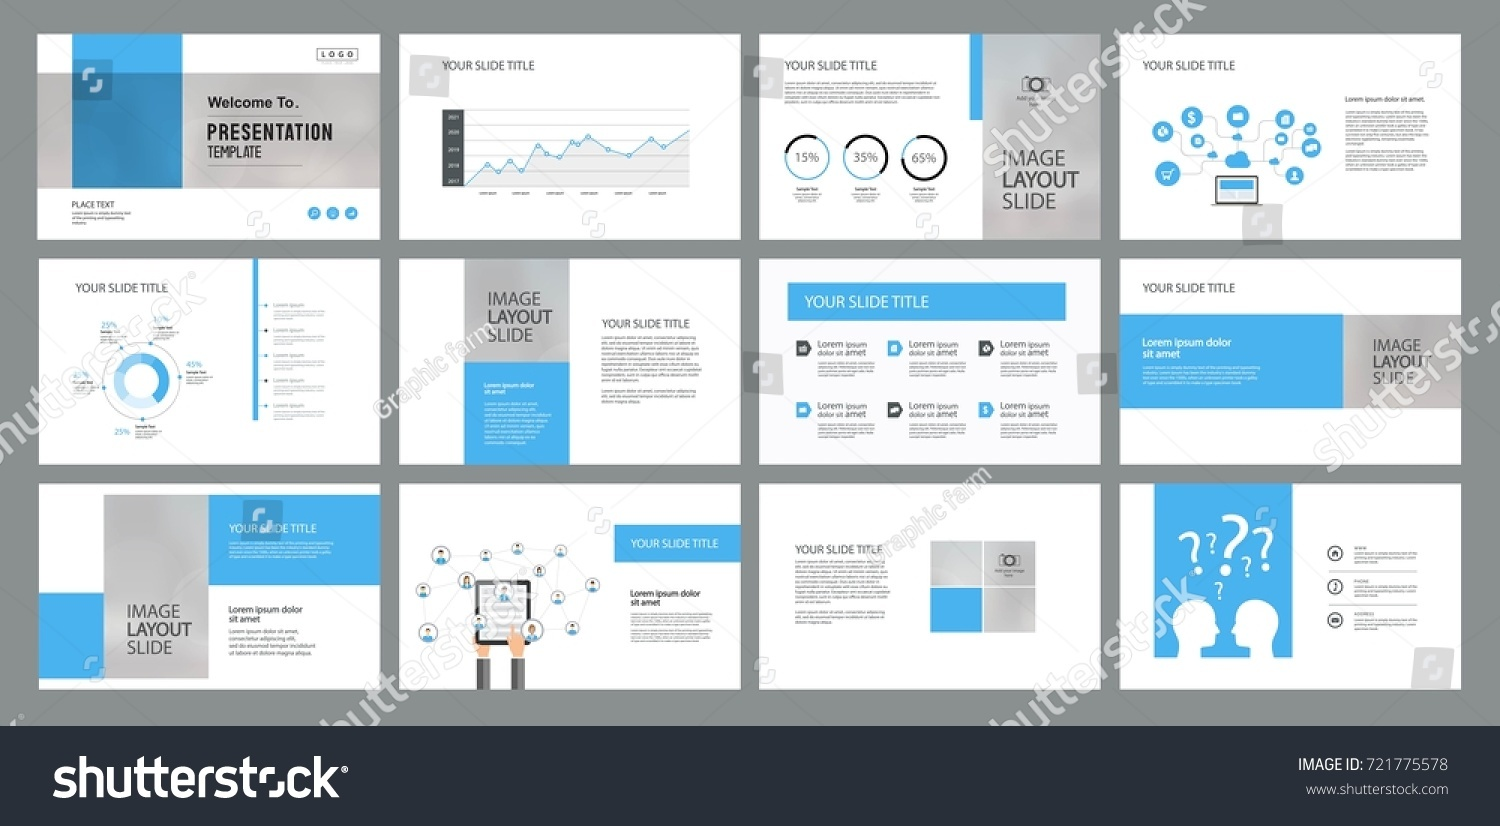 page layout design template for presentation slide and brochure with info graphic elements design